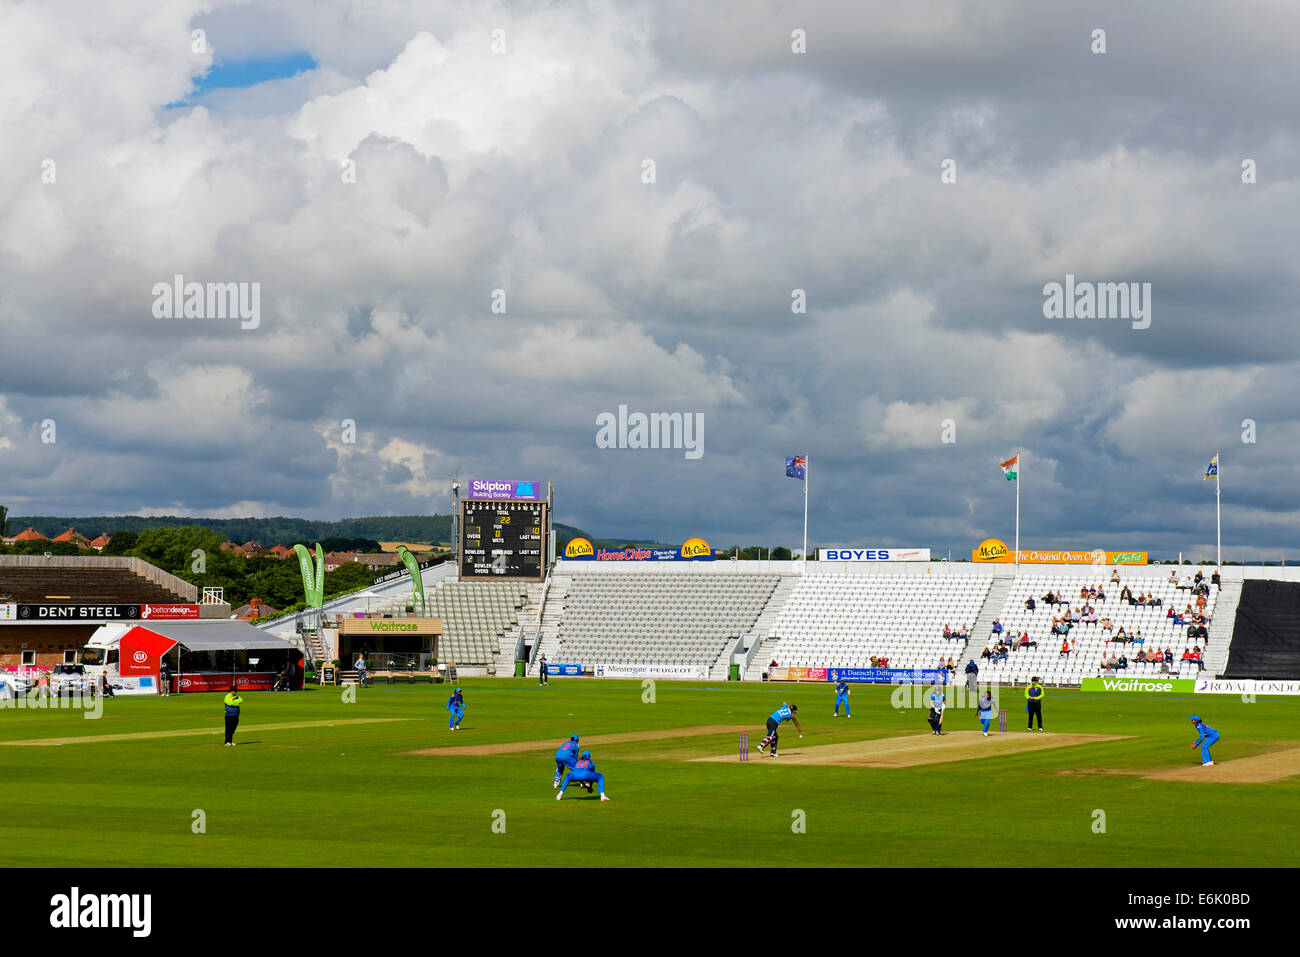 Women's international one-day cricket match between England and India, Scarborough, North Yorkshire, England - Stock Image